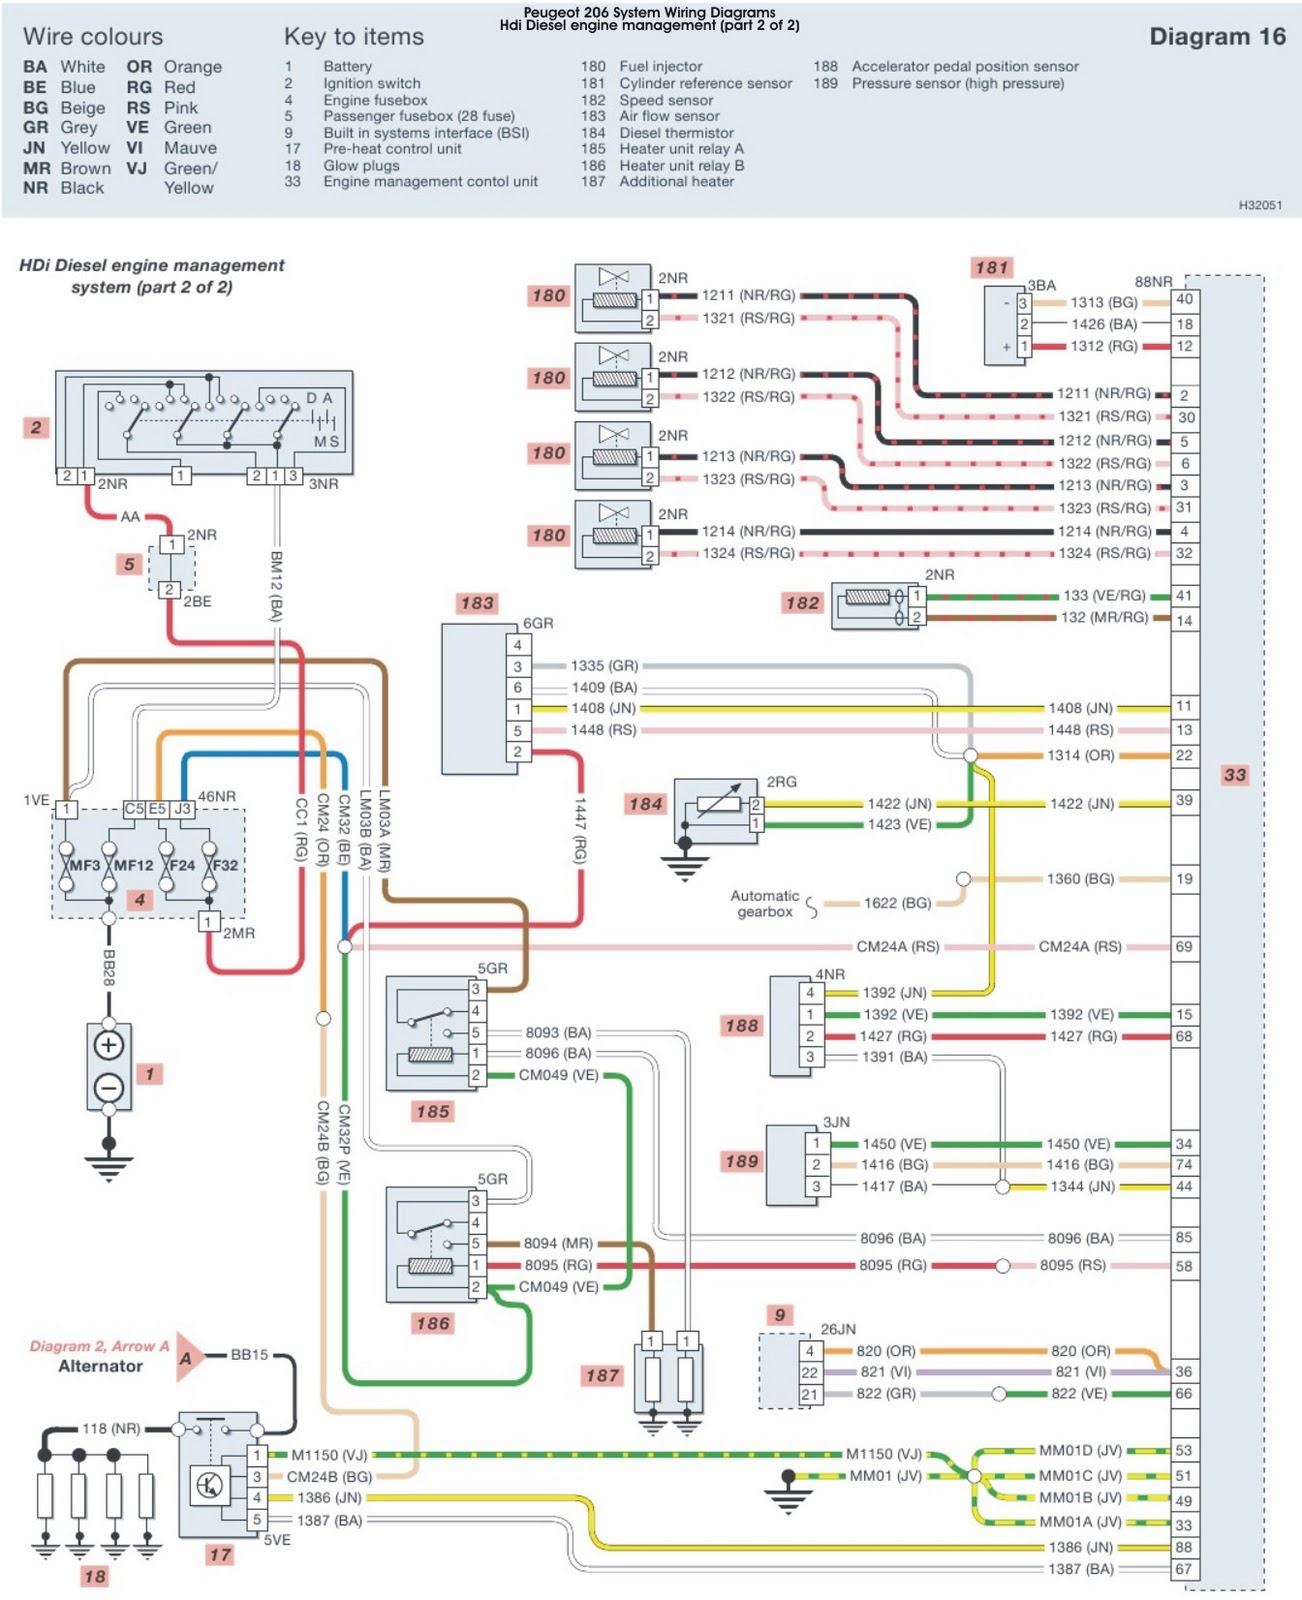 Peugeot 206 HDi Diesel Engine Management System part 2 Wiring Diagrams | Schematic Wiring